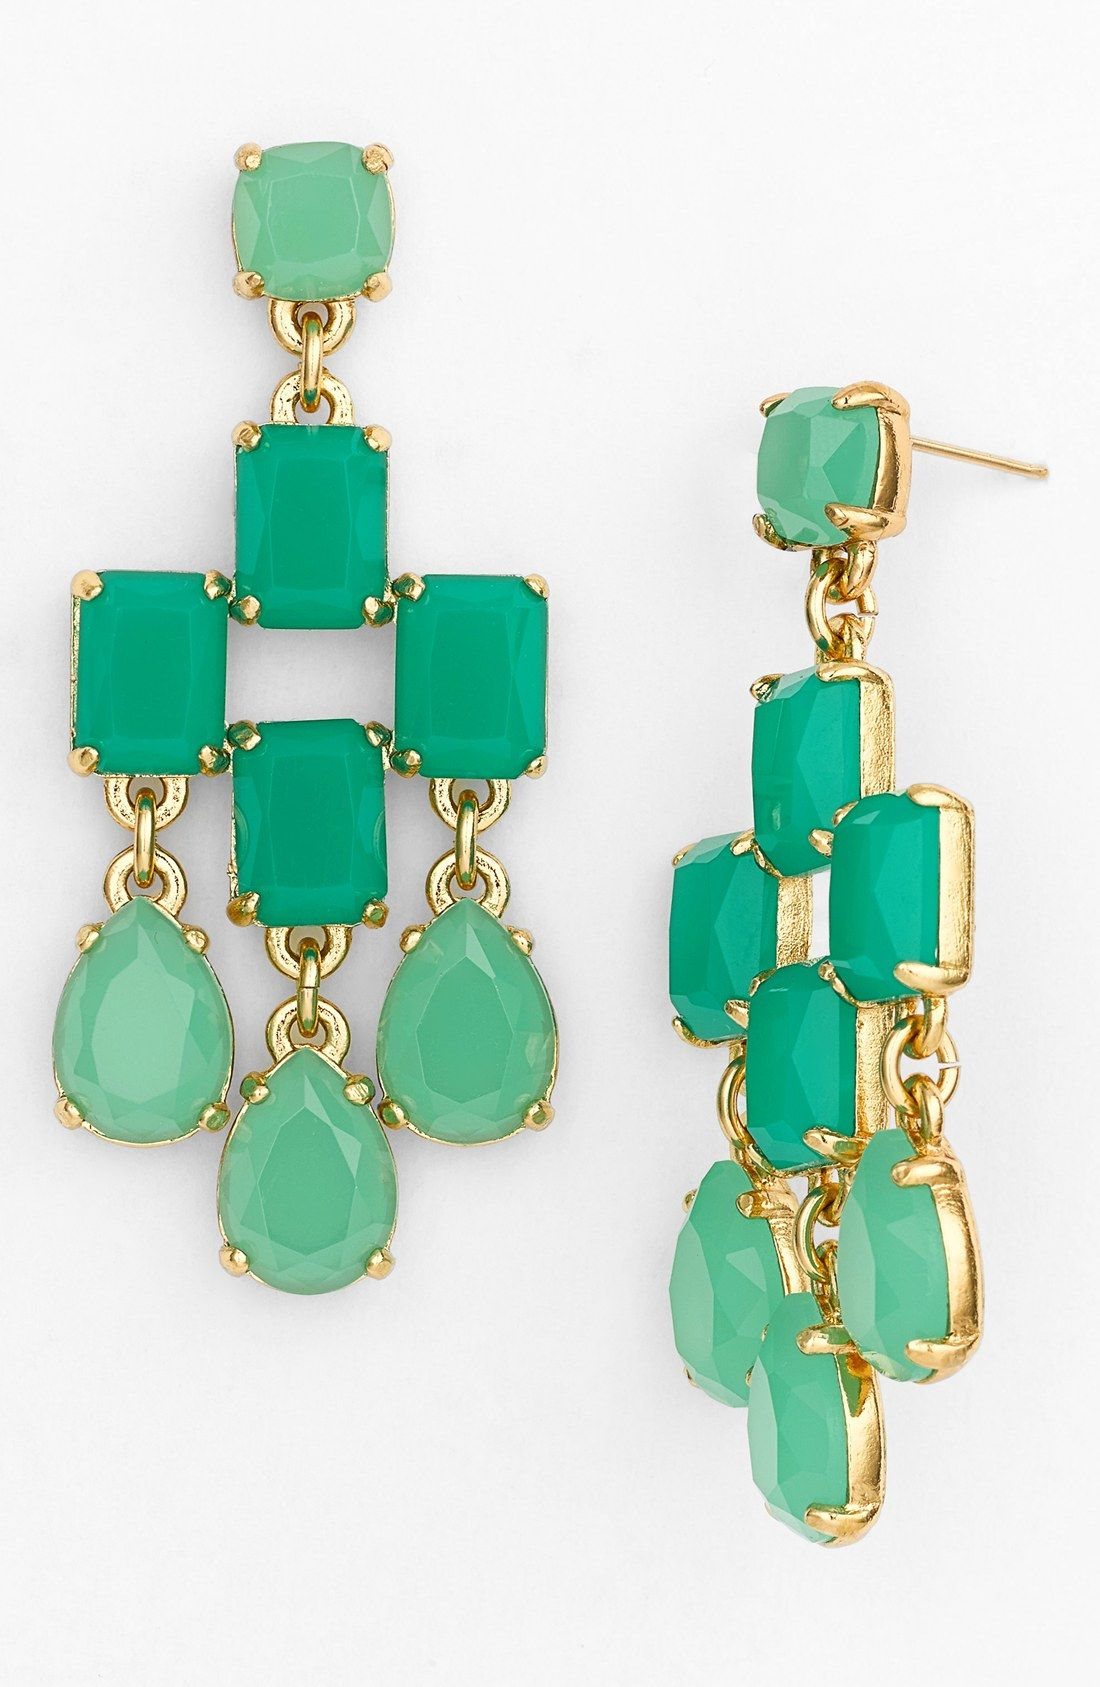 Colorful chandelier earrings to pair with the little black dress.